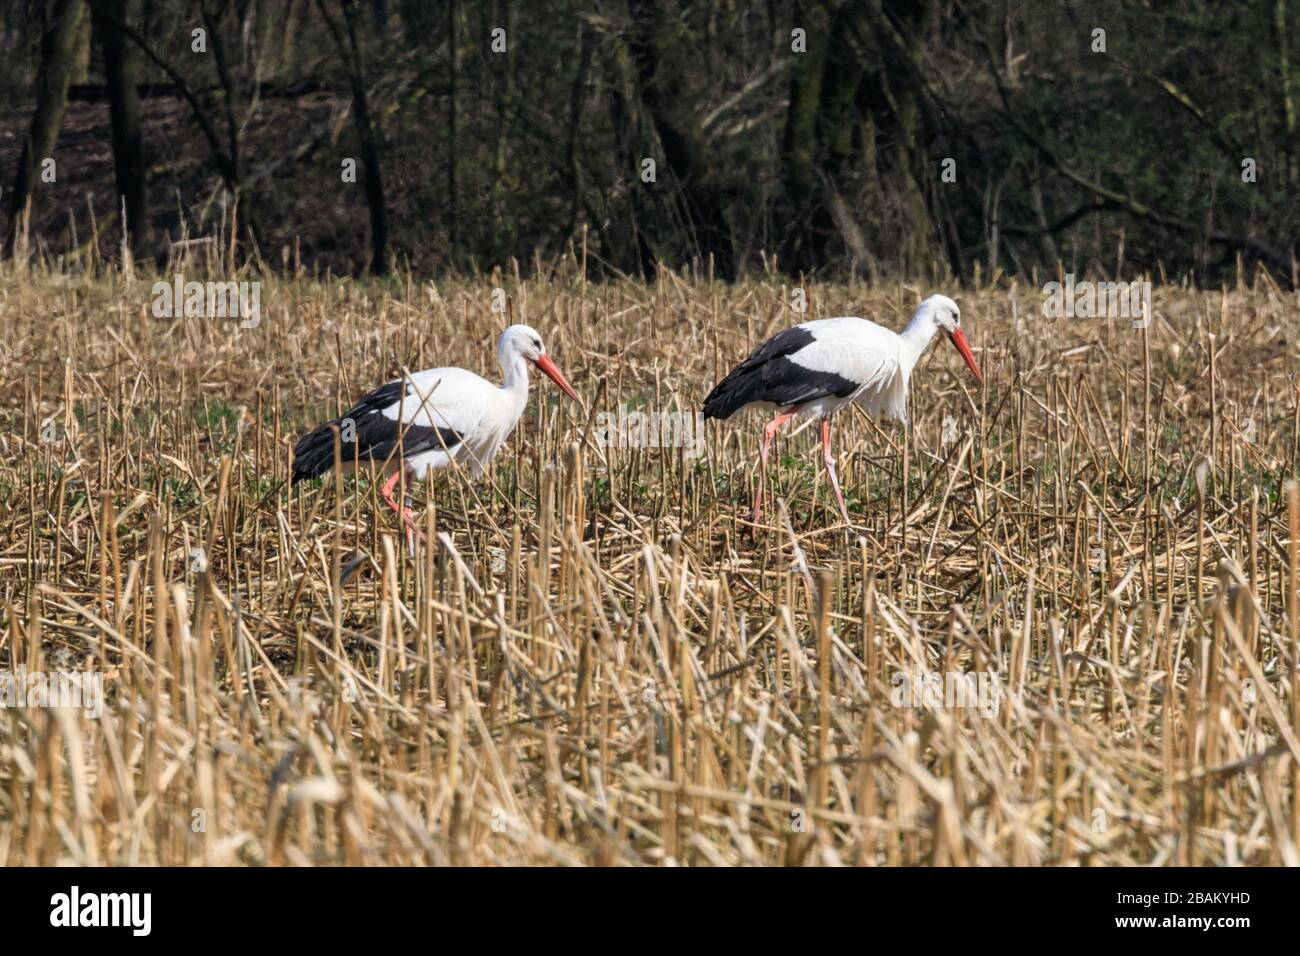 Sythen, NRW, Germany. 28th Mar, 2020. Wild white storks indicate a first glimpse of spring as they return to their summer quarters near Sythen in the Munsterland countryside in beautiful sunshine. Several pairs of the rare large migratory bird have returned from Africa and Spain every year to nest and bring up their young around the area. Credit: Imageplotter/Alamy Live News Stock Photo